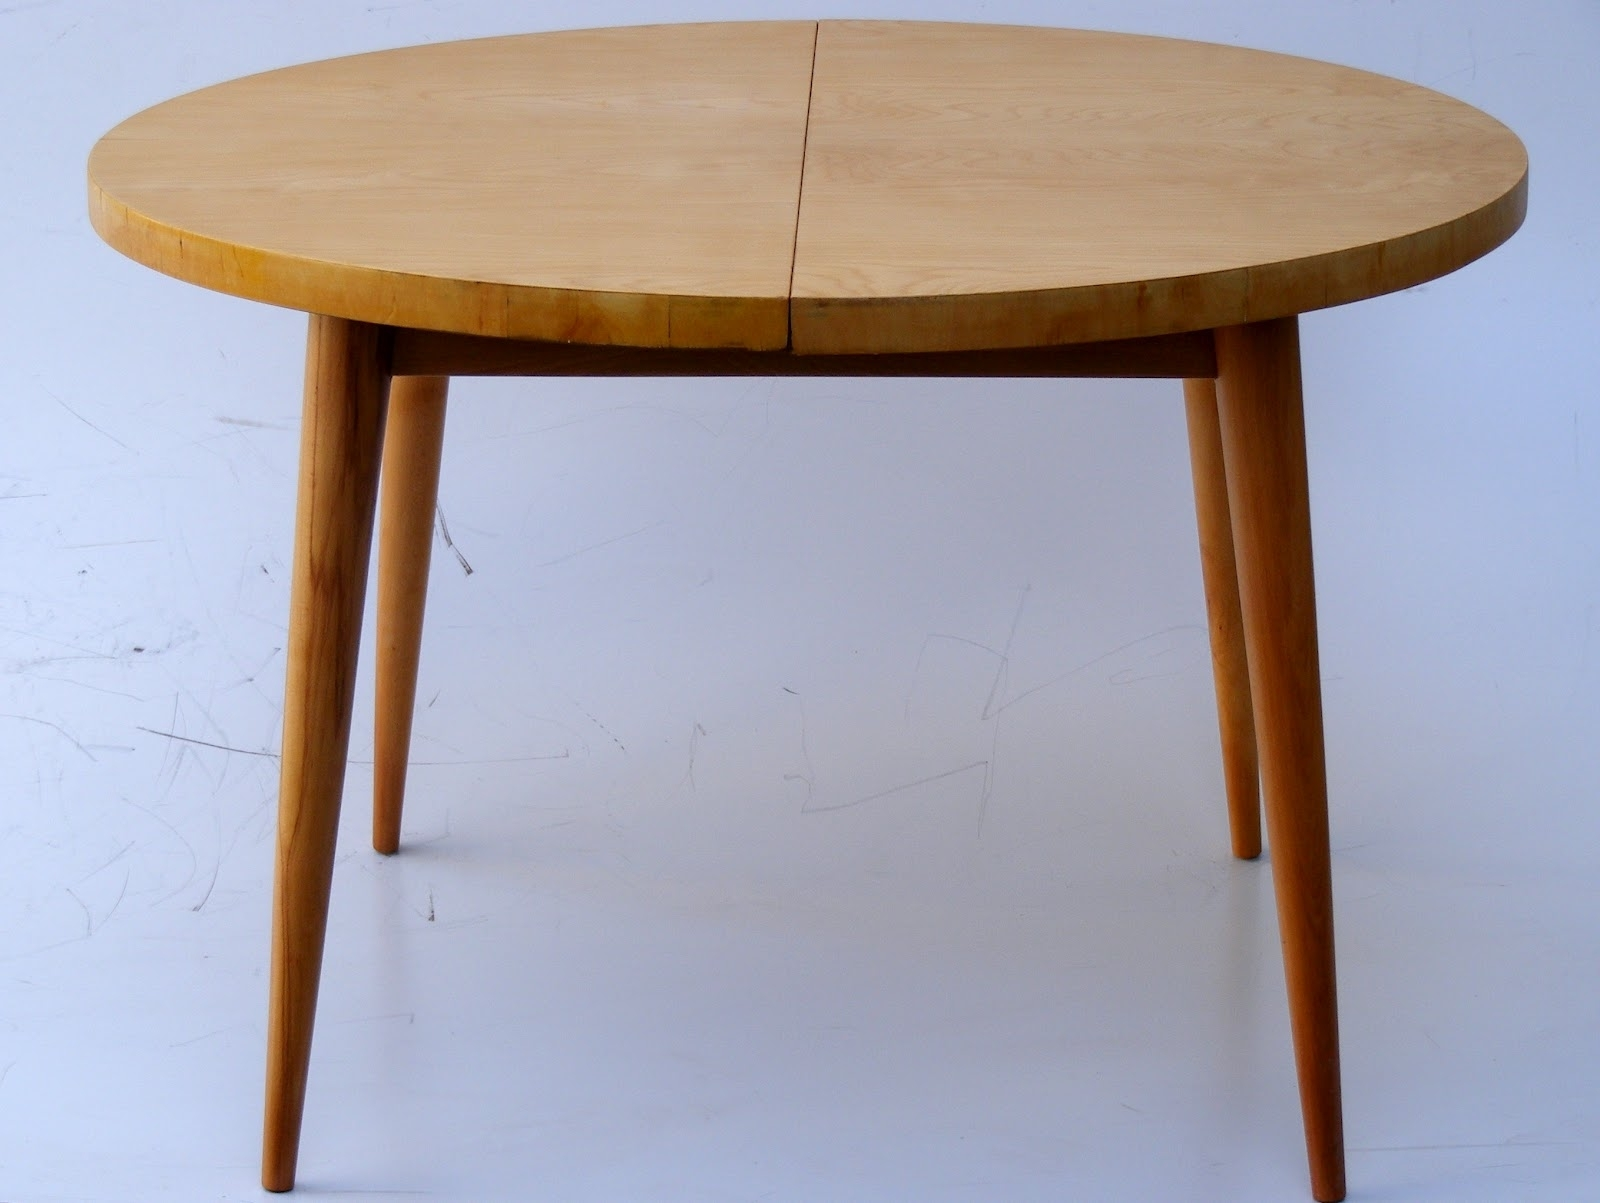 Small Round Extending Dining Tables With Favorite Dining Tables: Interesting Small Round Extending Dining Table (View 21 of 25)